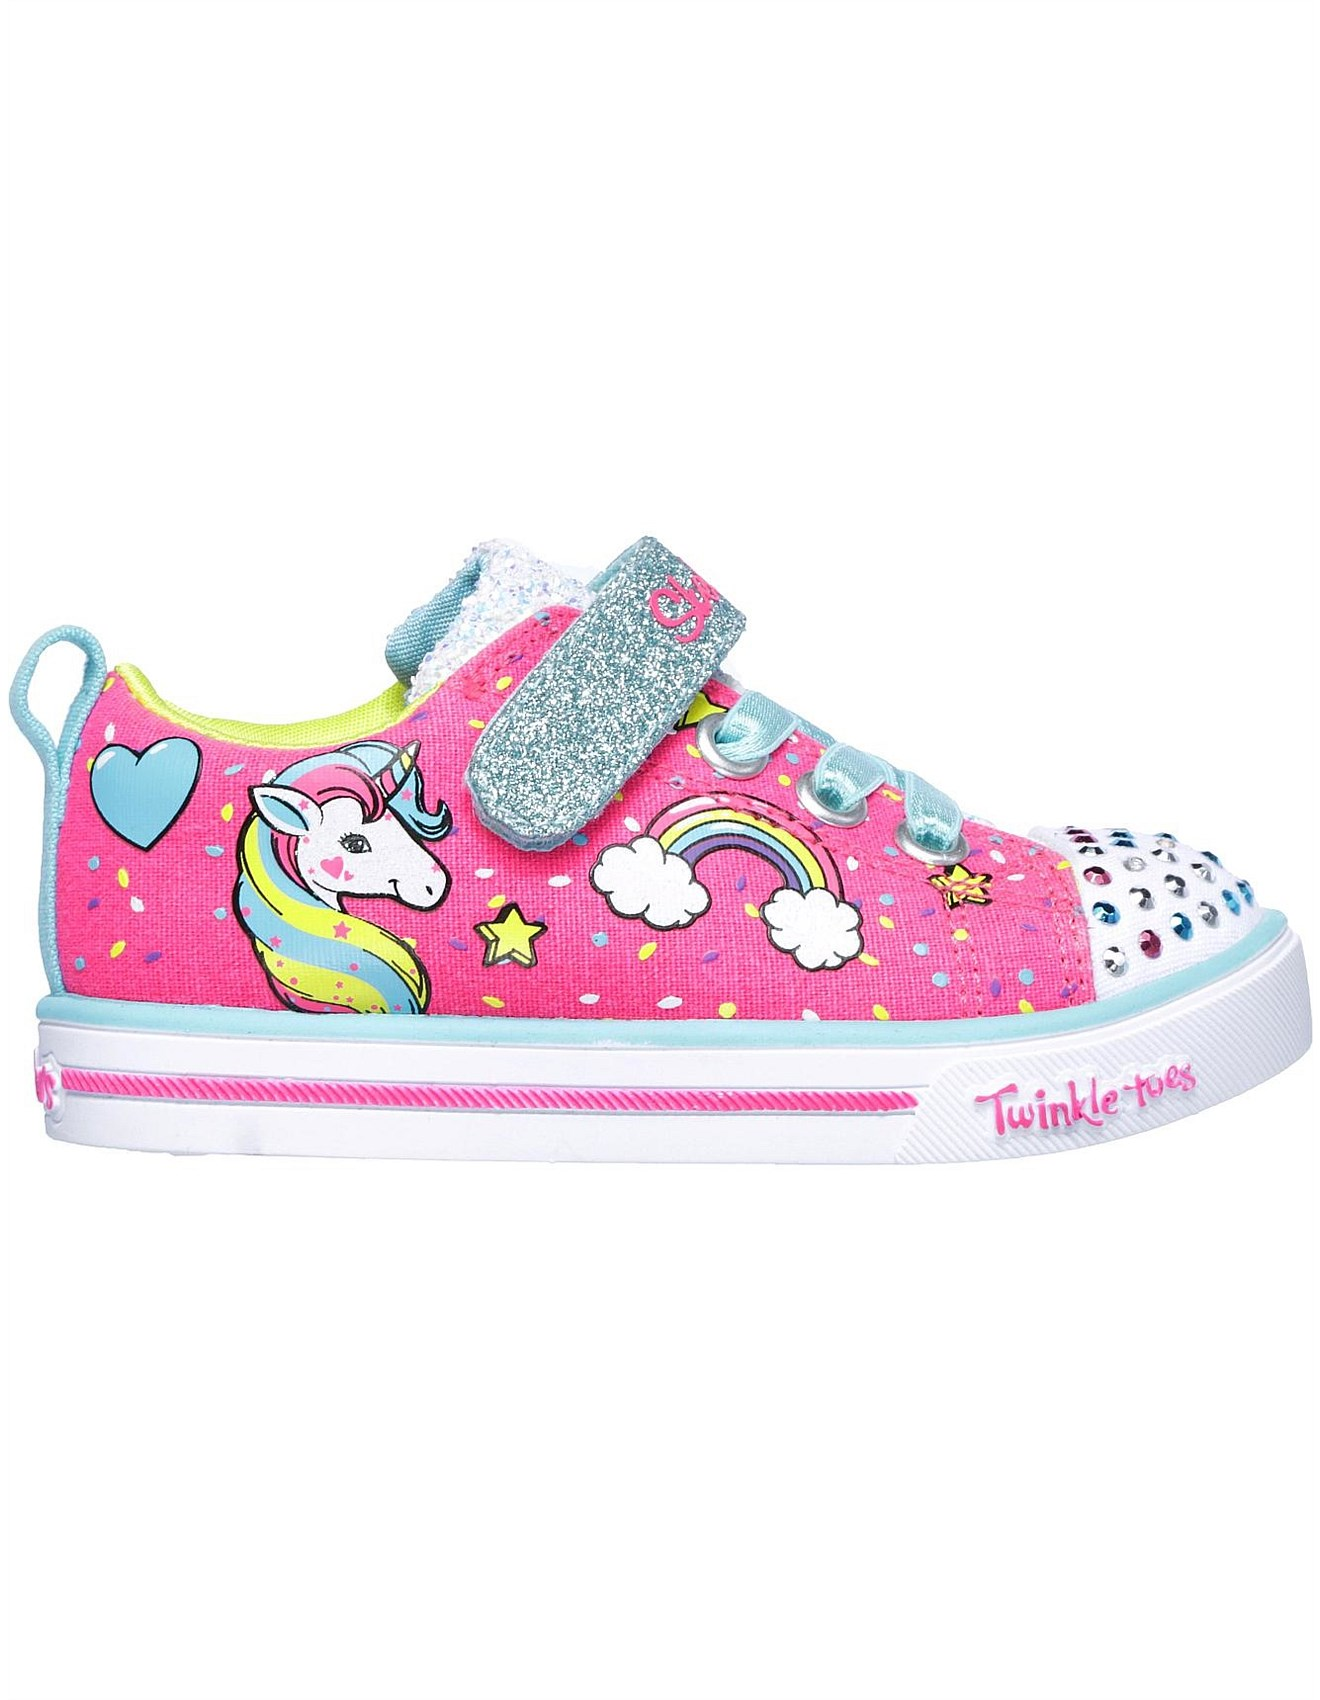 19c37be92c55 Kid's Shoes | Boys, Girls, Baby & School Shoes | David Jones - SPARKLE LITE  - UNICORN CRAZE